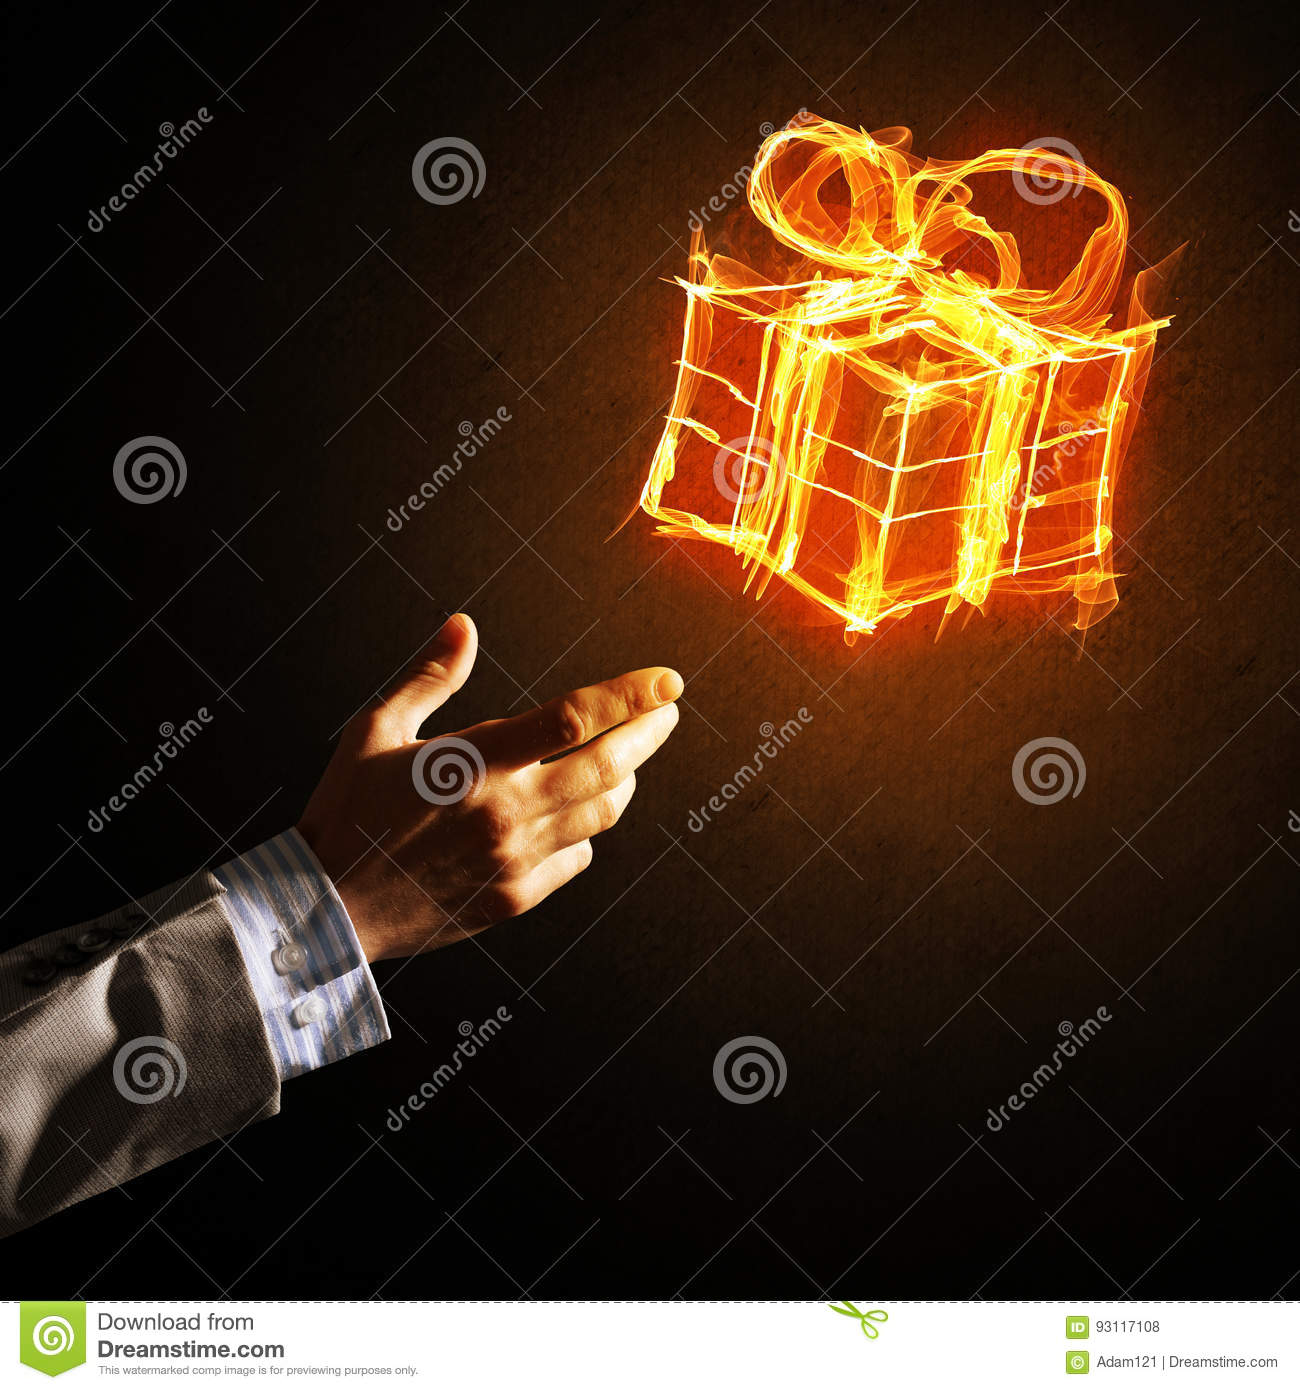 Concept Of Celebration With Fire Burning Gift Symbol And Businessman